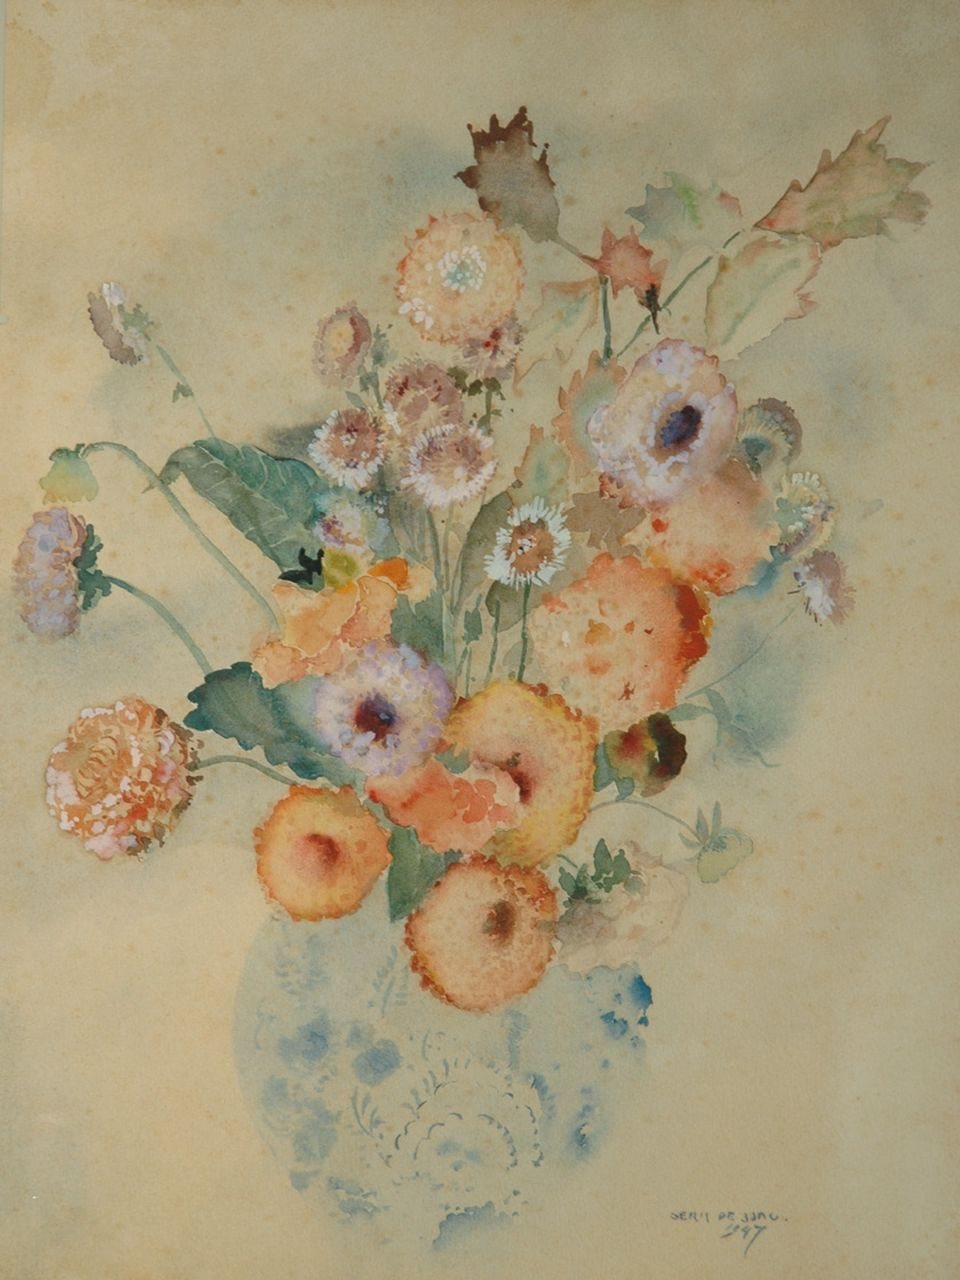 Jong G. de | Gerben 'Germ' de Jong, Flower still life, watercolour on paper 44.7 x 35.8 cm, signed l.r. and dated 1947